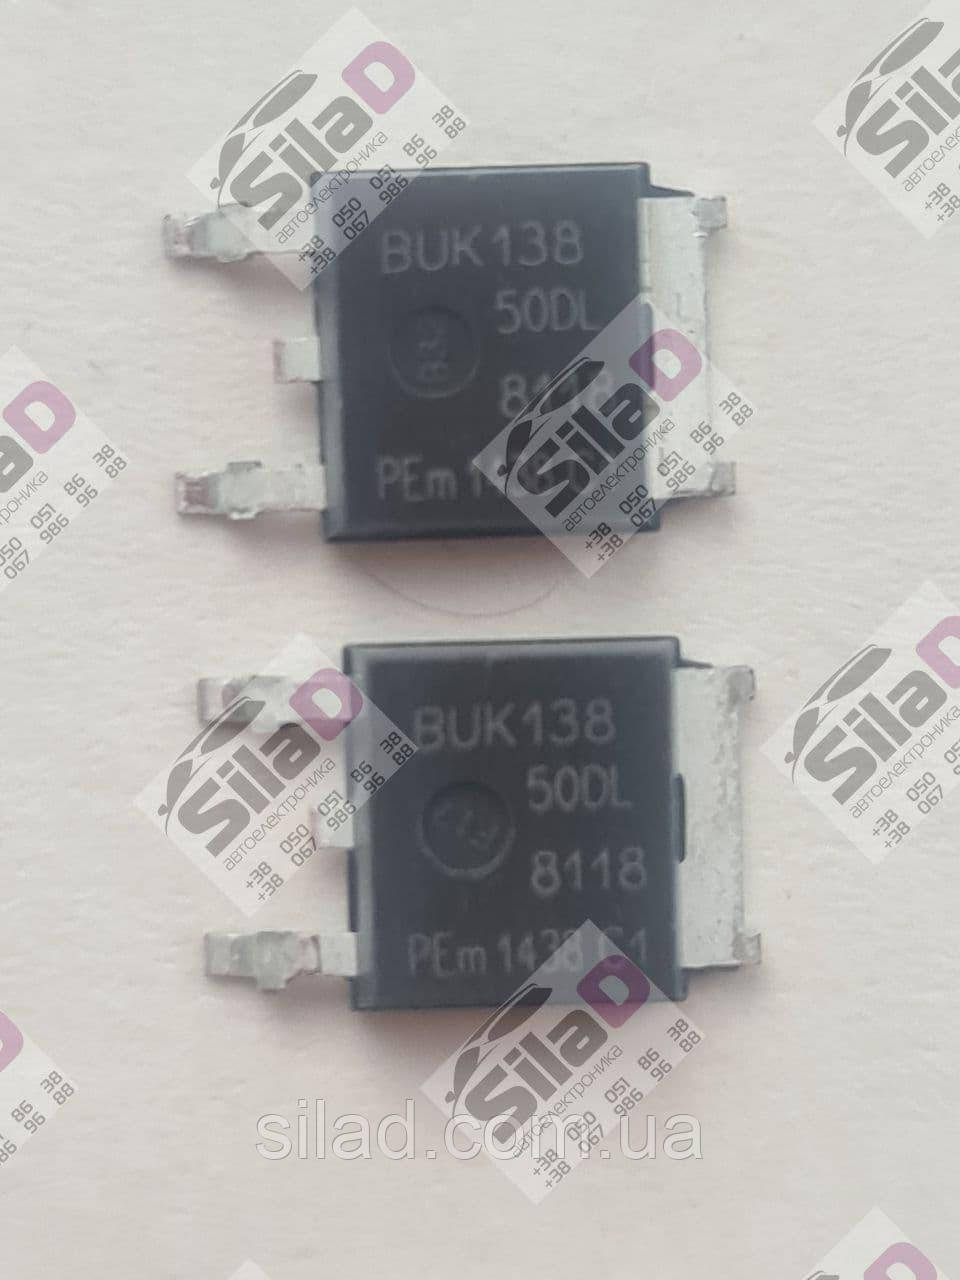 Транзистор BUK138-50DL NXP Semiconductors корпус DPAK